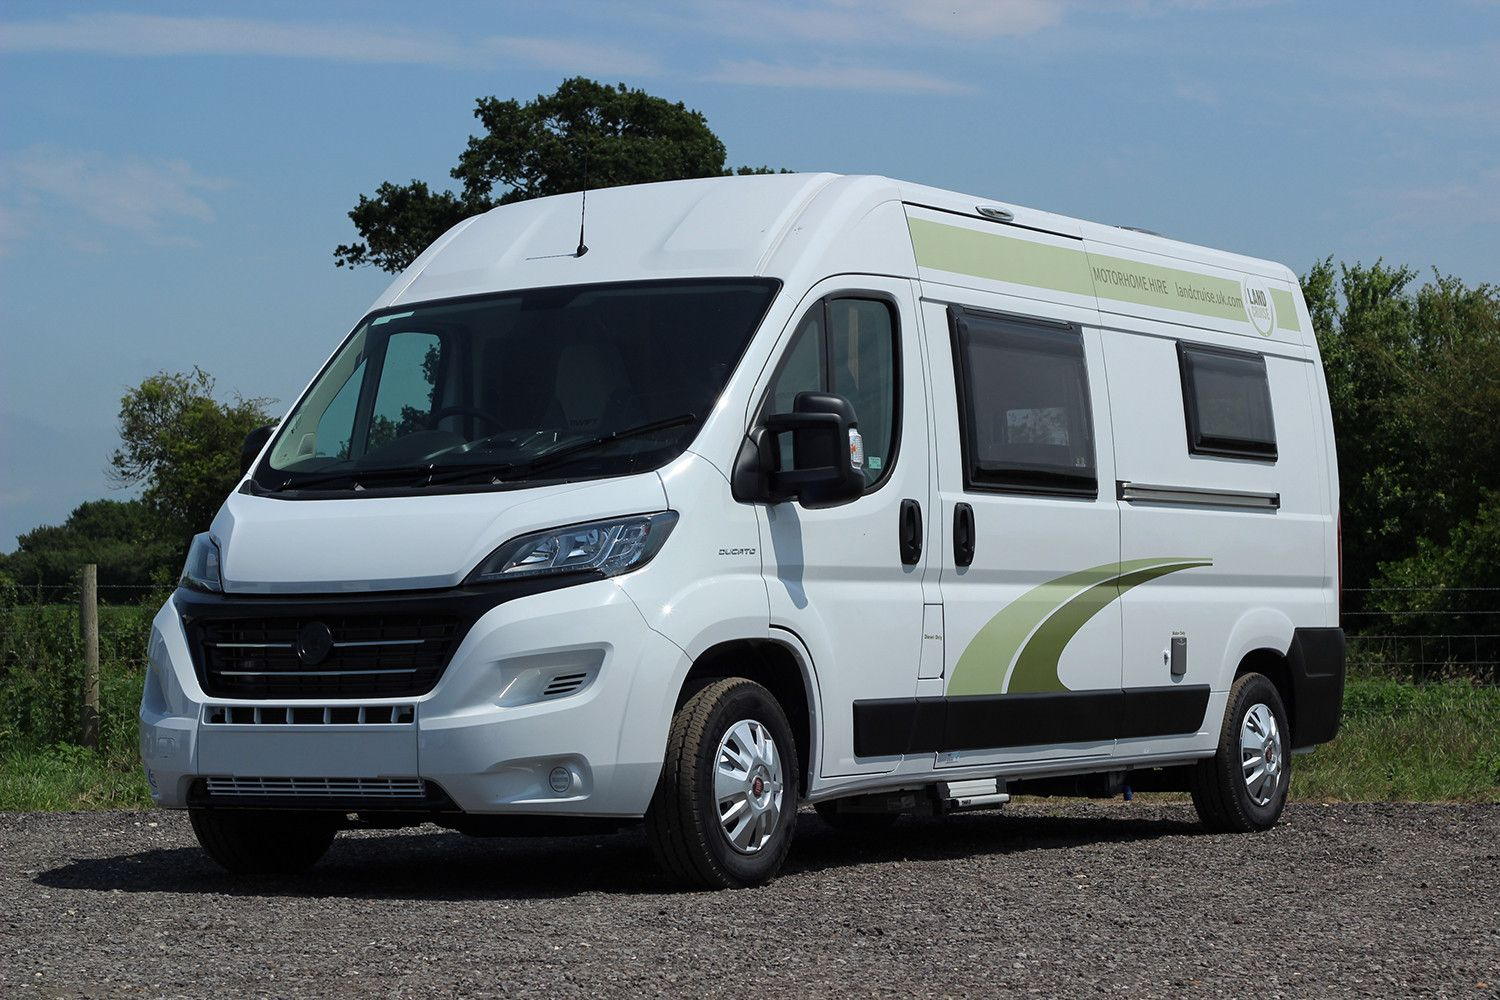 A Swift Motorhome called Swift-Select-122 and Select 122 for hire in chichester, West Sussex